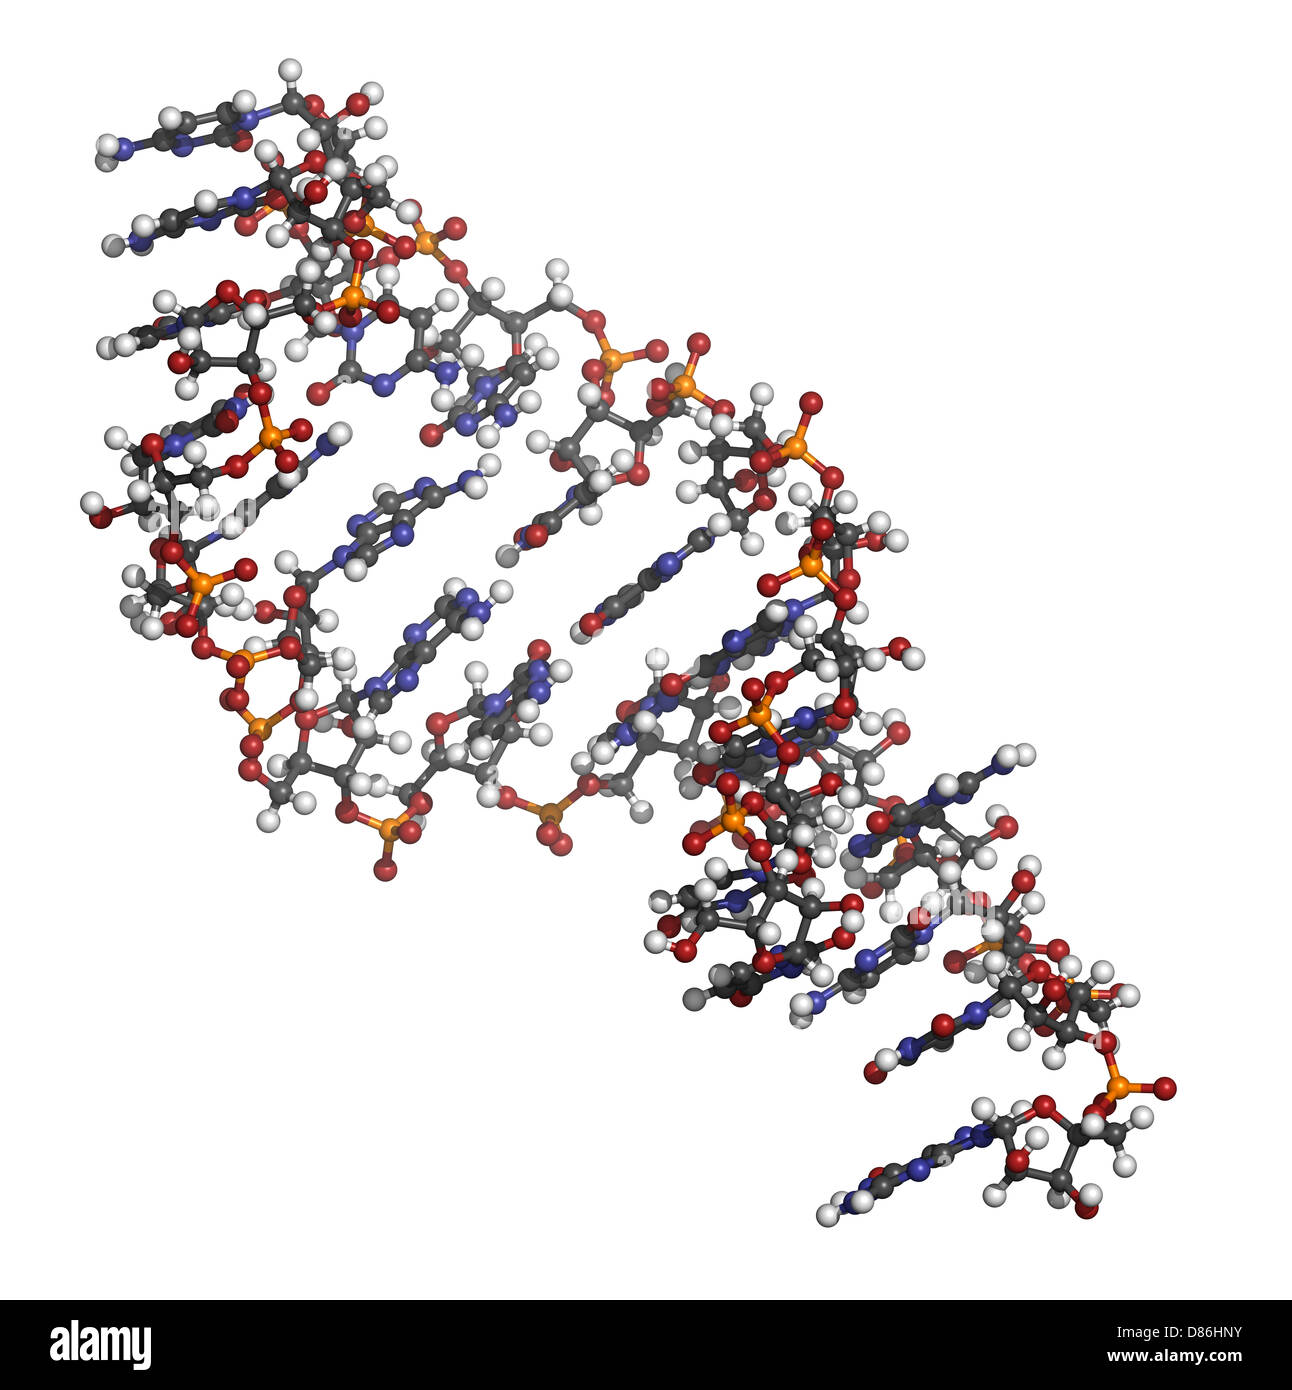 Micro RNA (miRNA, hsa-miR-133a) structure, computer model. MiRNA is non-coding RNA that has gene regulatory functions. - Stock Image